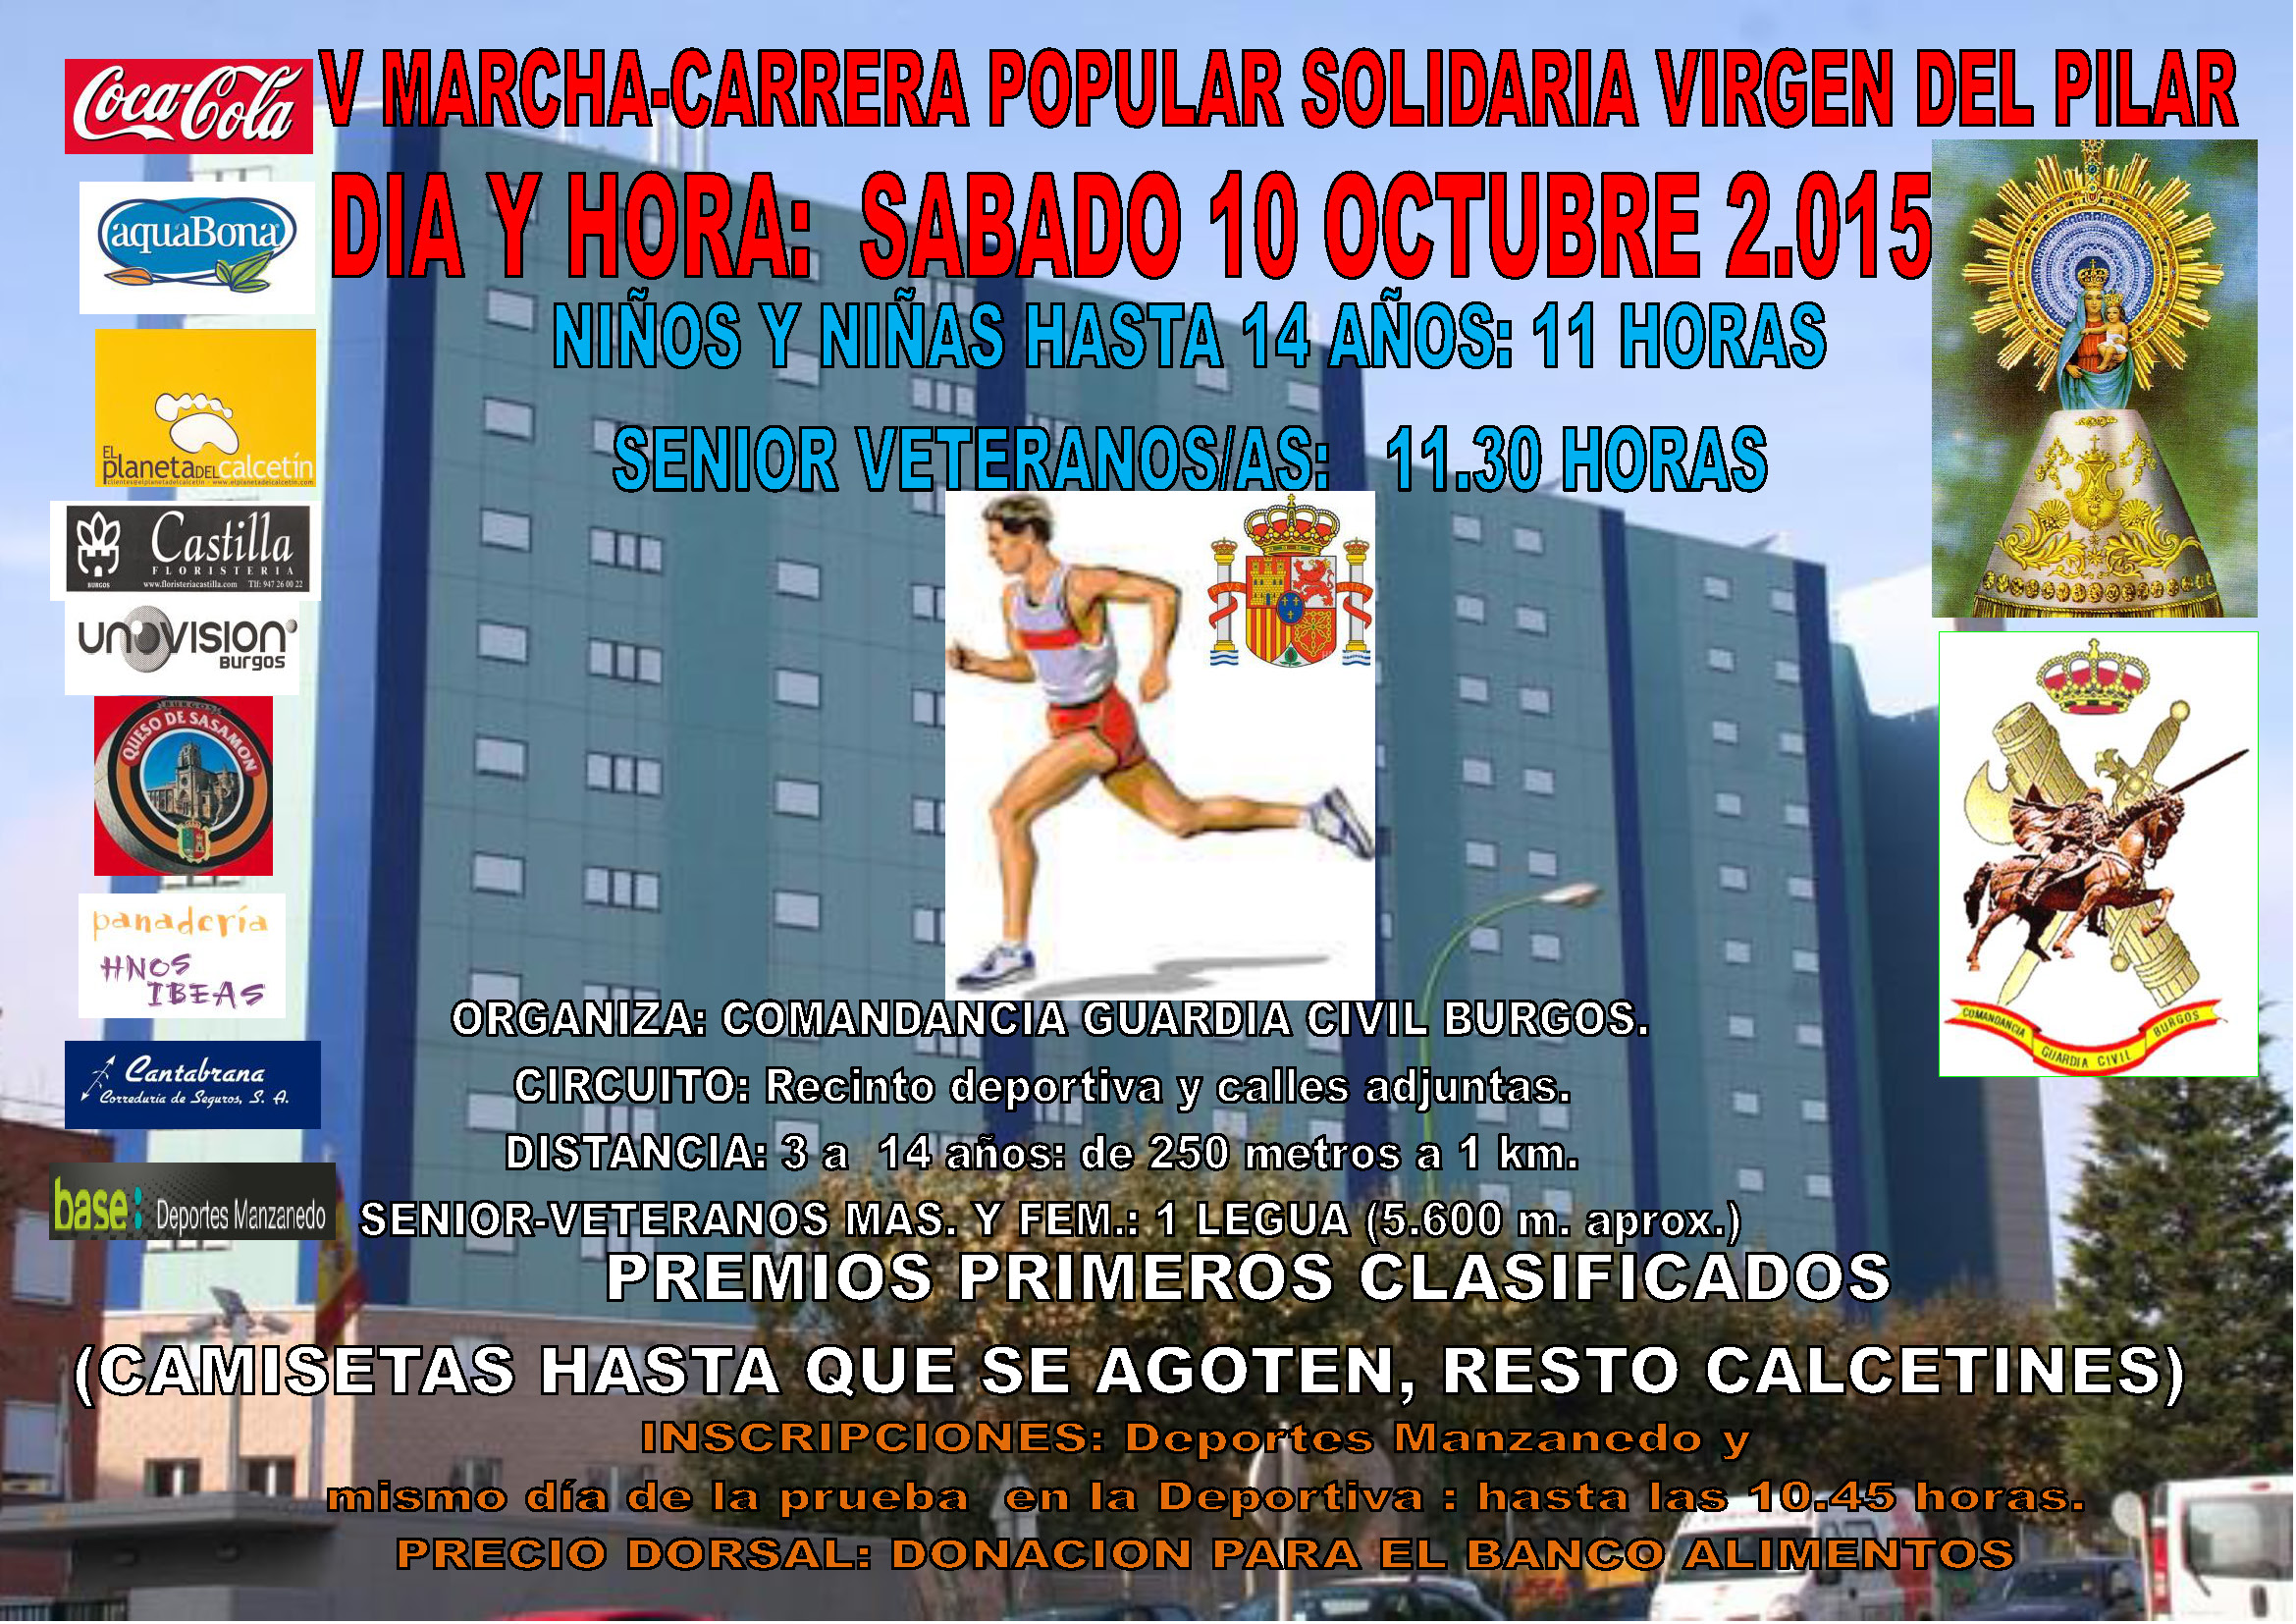 V MARCHA-CARRERA POPULAR SOLIDARIA VIRGEN DEL PILAR